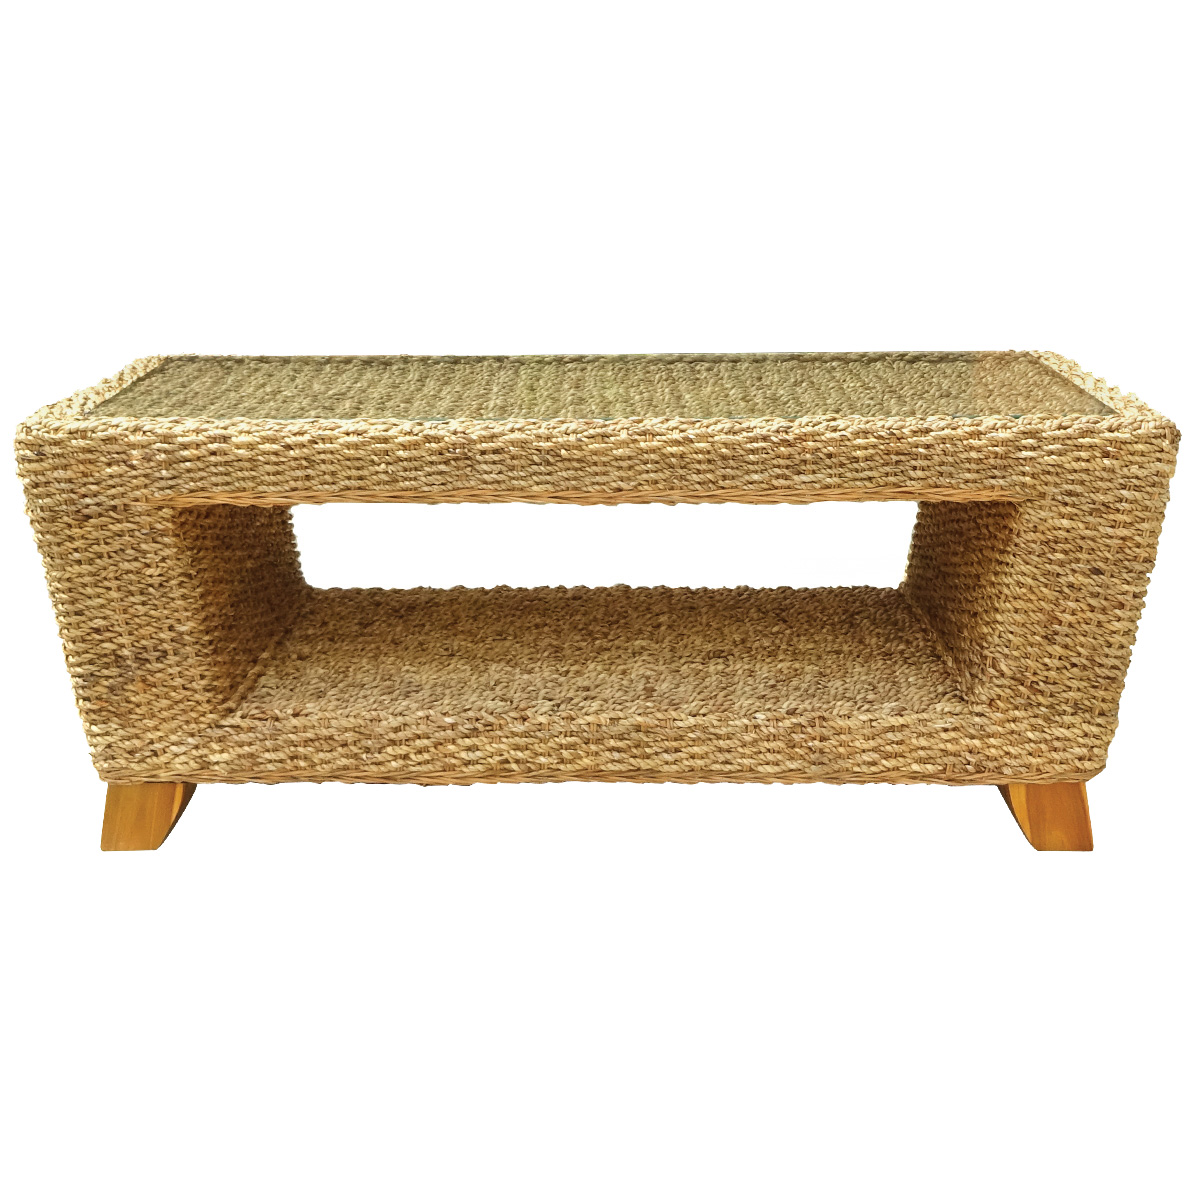 Charles bentley natural water hyacinth conservatory coffee table image is loading charles bentley natural water hyacinth conservatory coffee table geotapseo Image collections